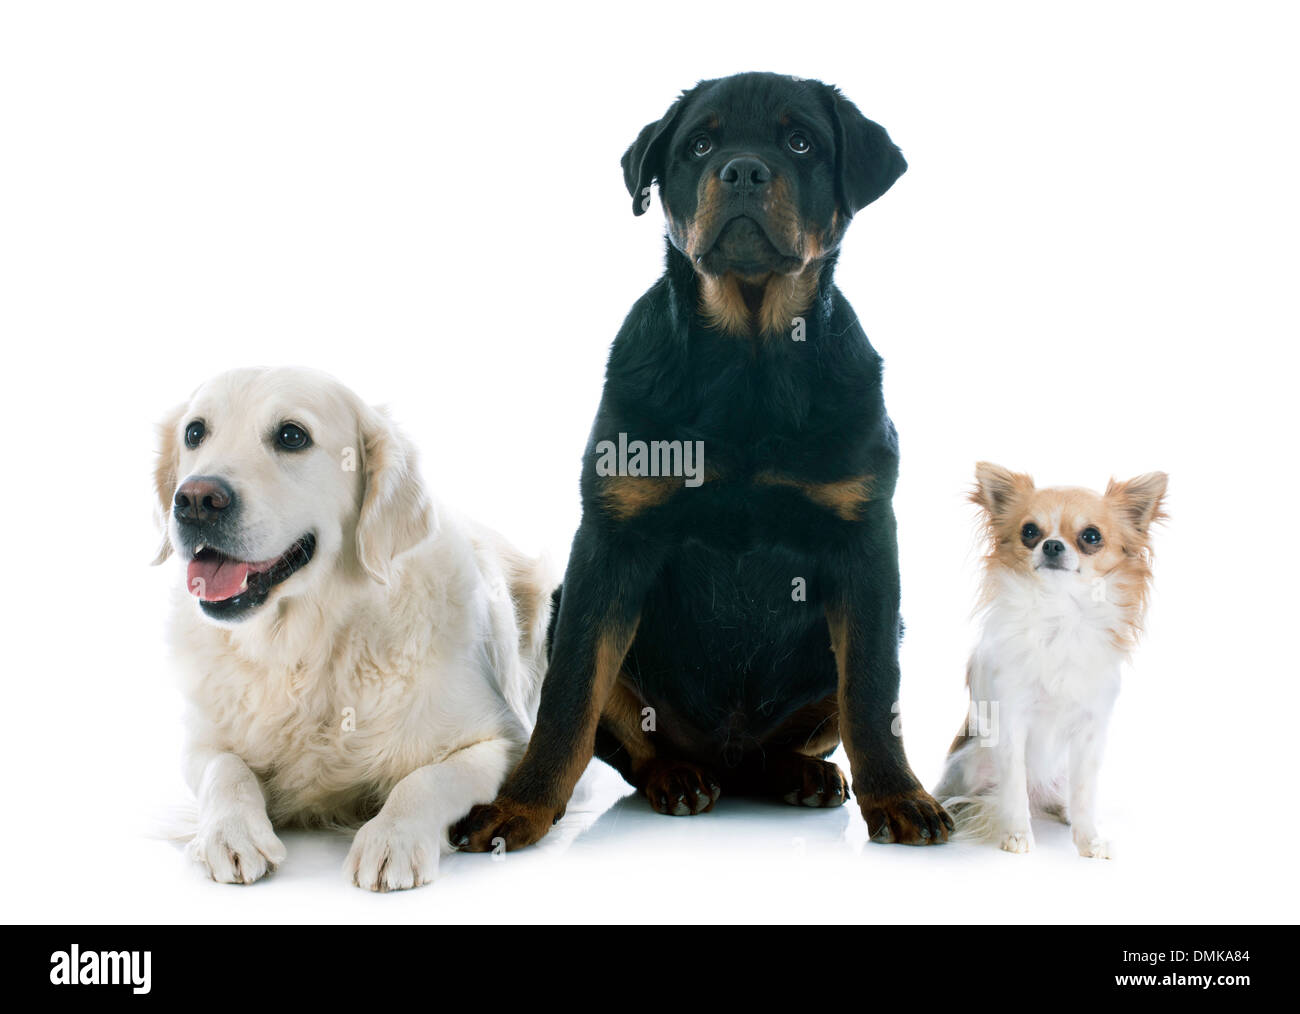 Purebred Golden Retriever Puppy Rottweiler And Chihuahua In Front